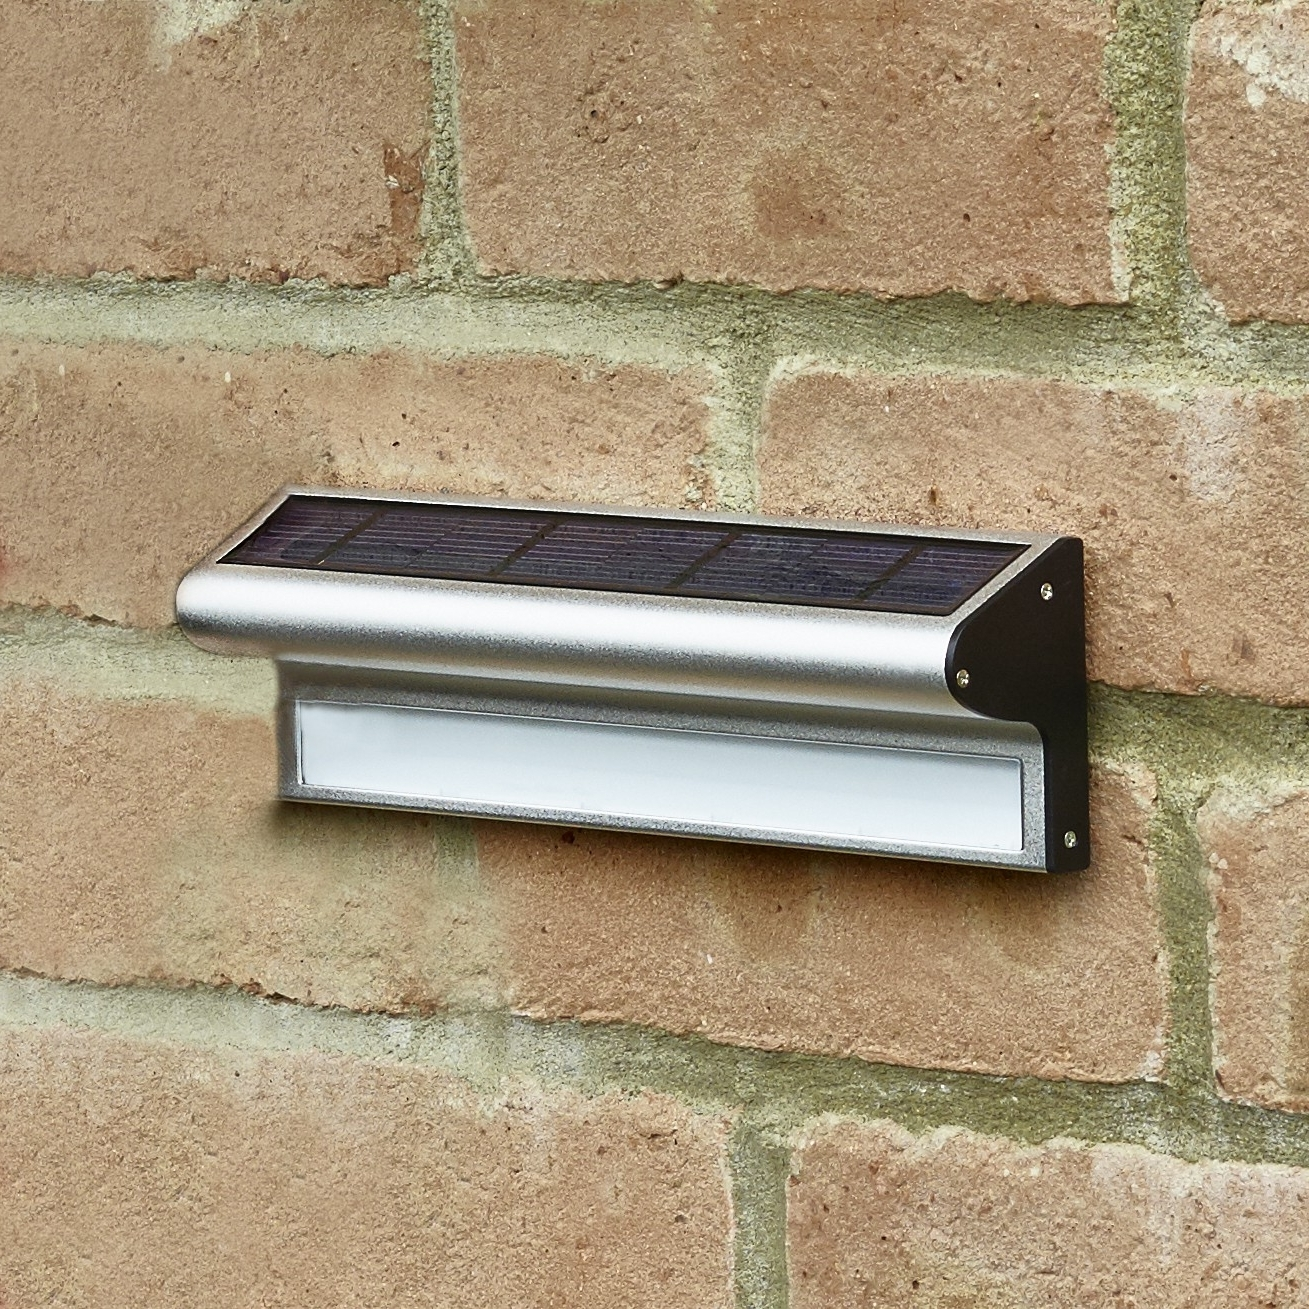 Solar Led Outdoor Wall Lighting Within Trendy Kensington Solar Led Wall Light – Lighting Direct (View 15 of 20)